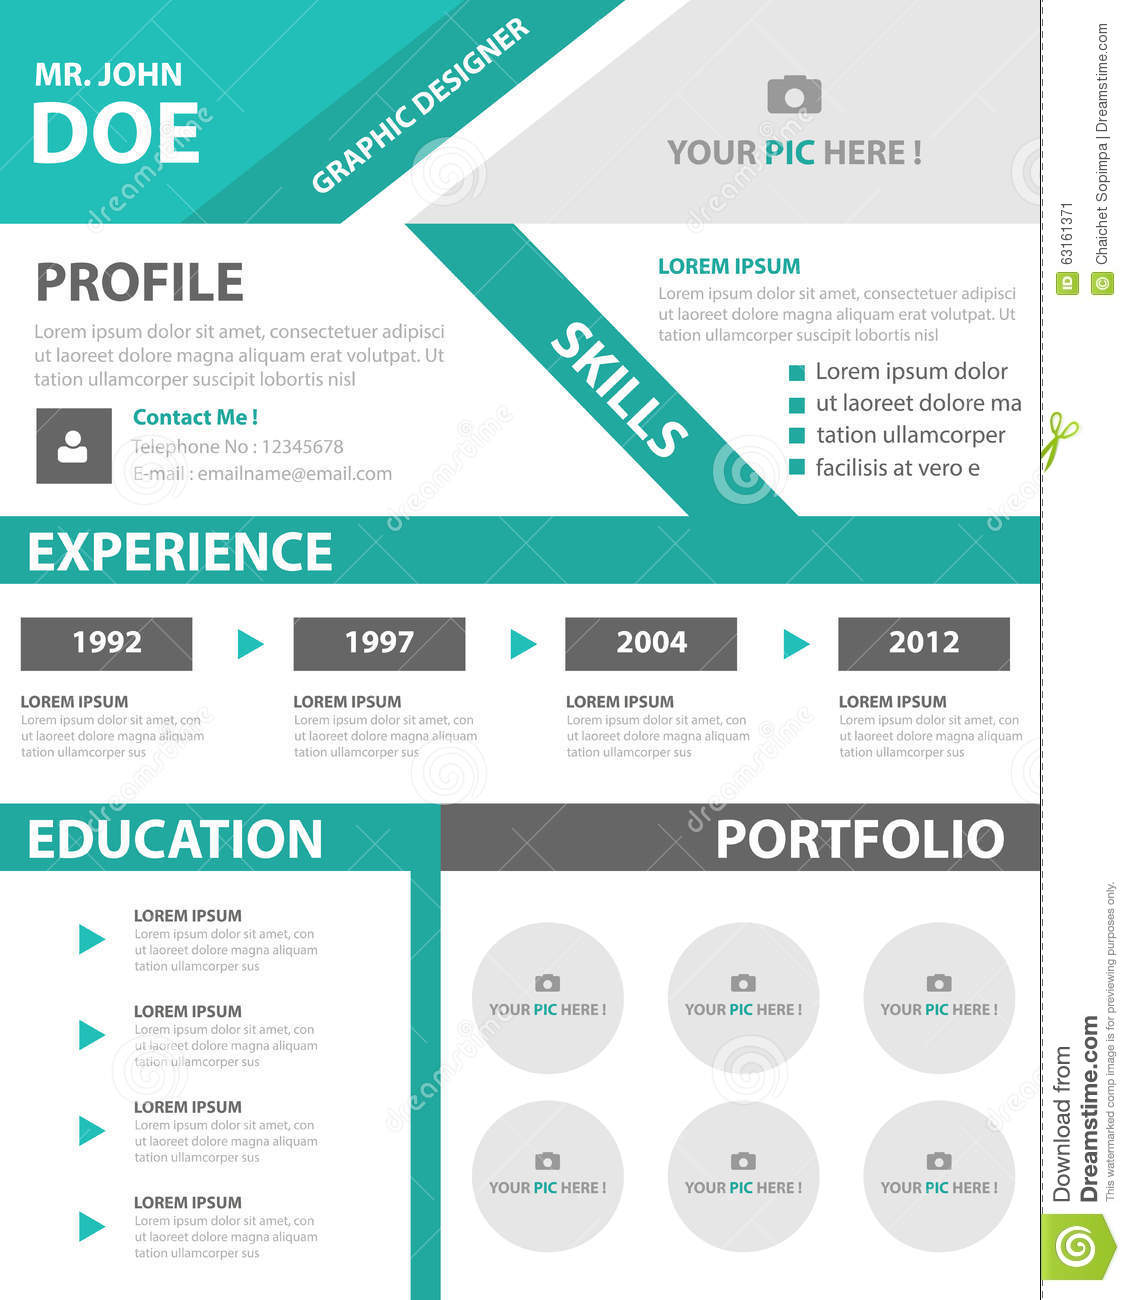 creative curriculum vitae template service resume creative curriculum vitae template curriculum vitae cv template the balance vector green smart creative resume